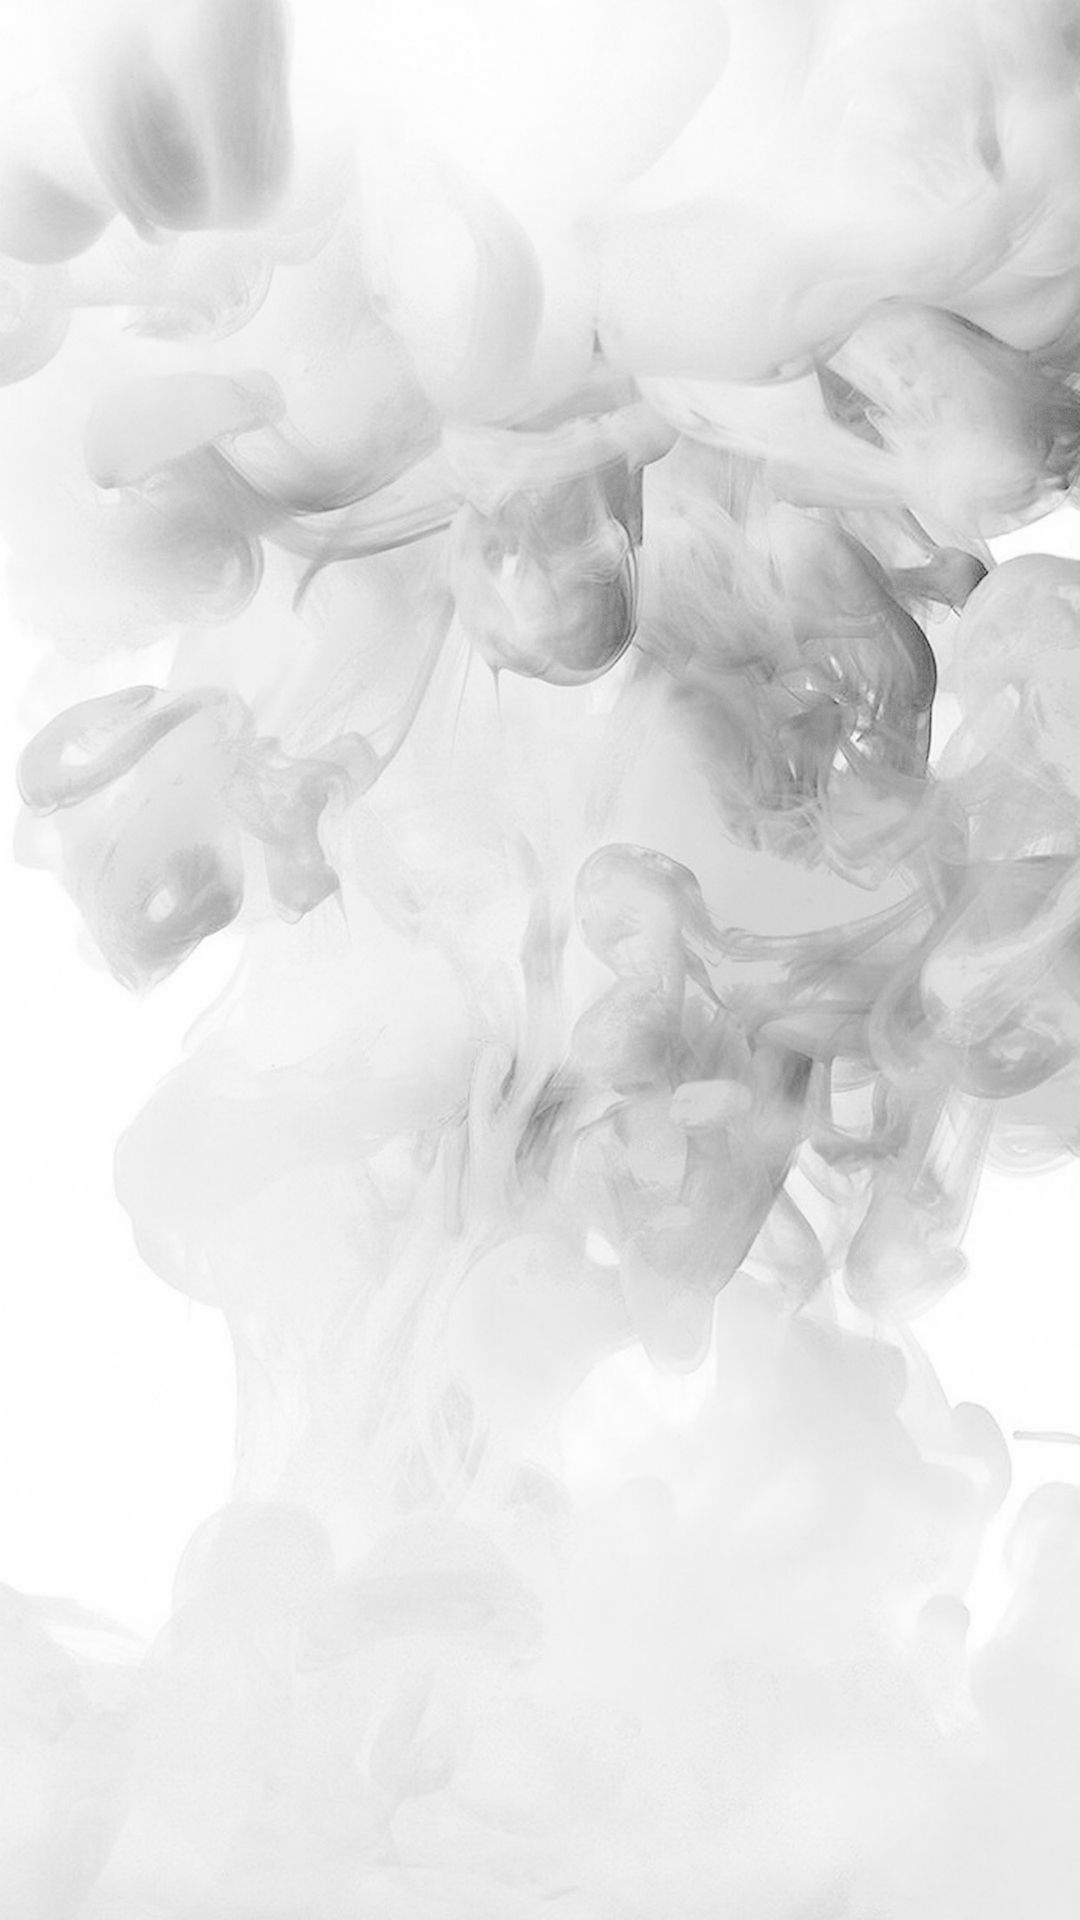 Smoke White Abstract Fog Art Illust iPhone 8 Wallpapers